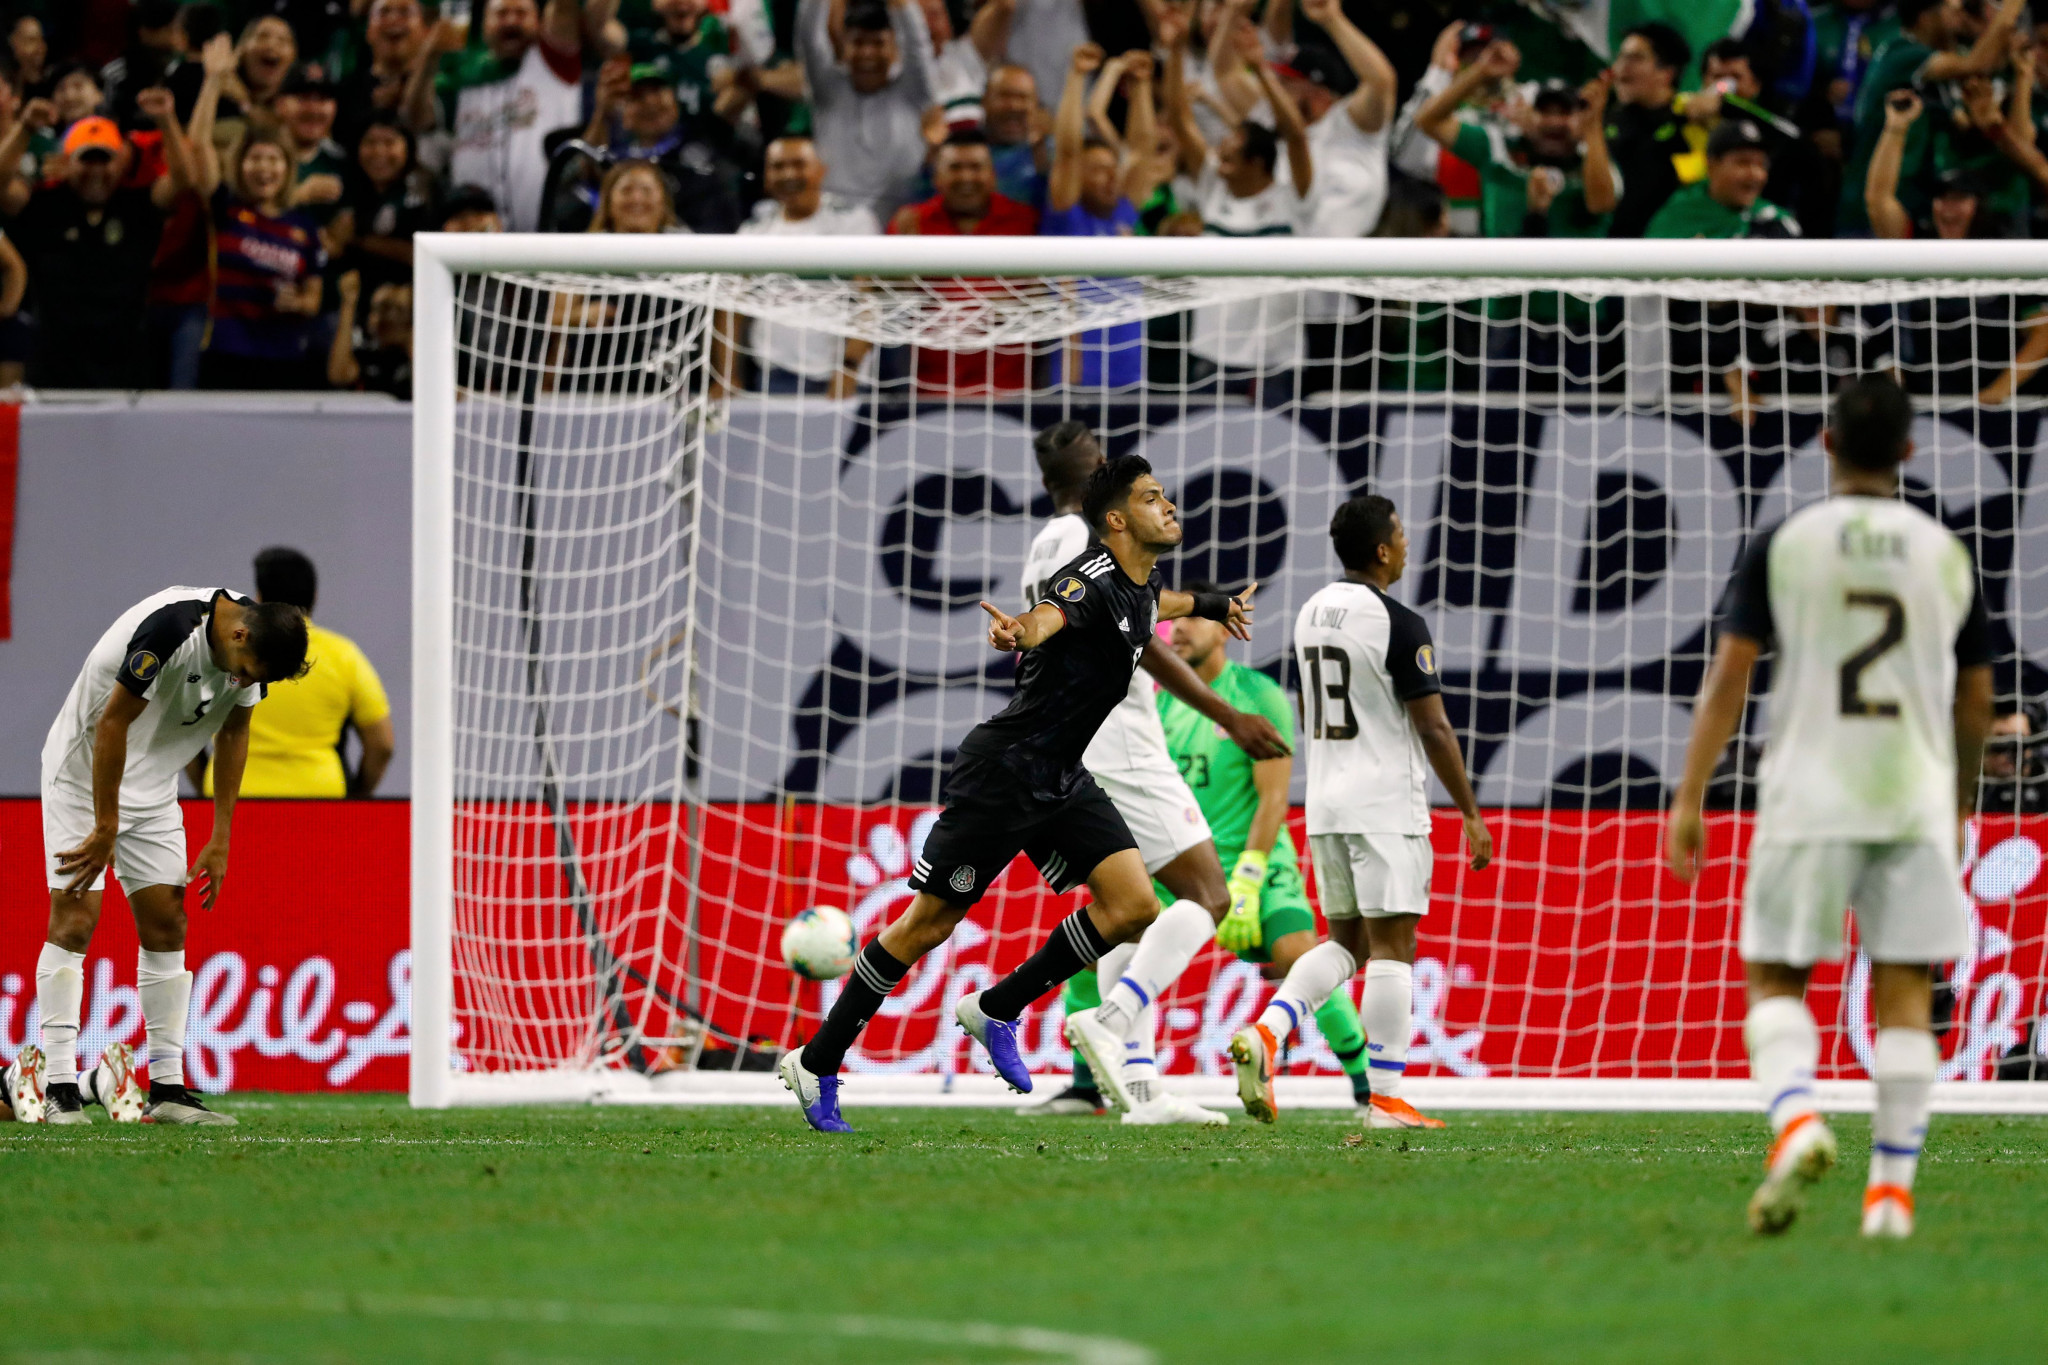 Mexico's Raúl Jiménez celebrates opening the scoring against Costa Rica in the CONCACAF Gold Cup quarter-finals in Houston, a match they eventually won 5-4 on penalties ©Getty Images